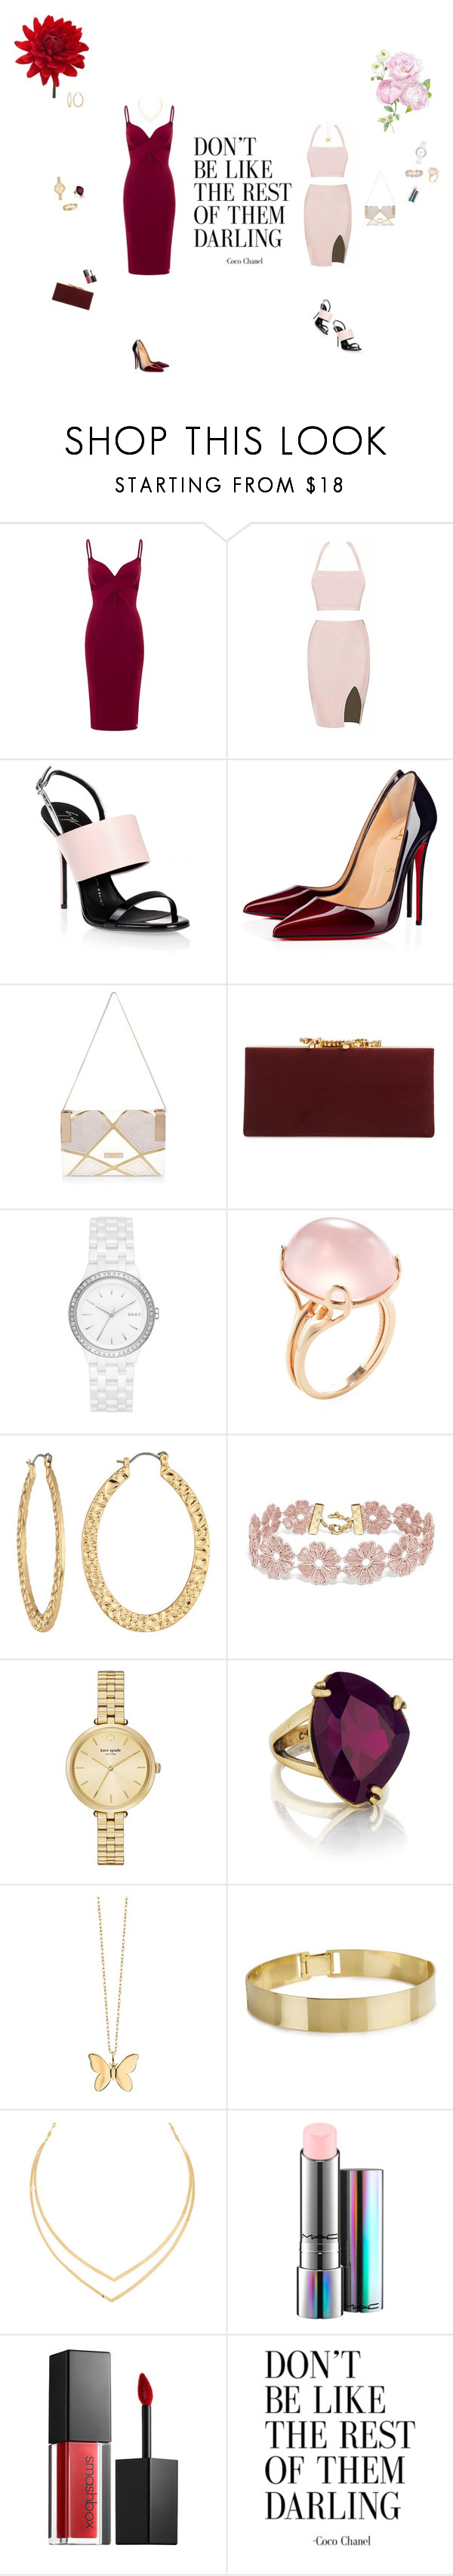 """Chicks before d*cks"" by fuffa ❤ liked on Polyvore featuring Giuseppe Zanotti, Christian Louboutin, River Island, Jimmy Choo, DKNY, Goshwara, Fragments, BaubleBar, Kate Spade and Chloe + Isabel"